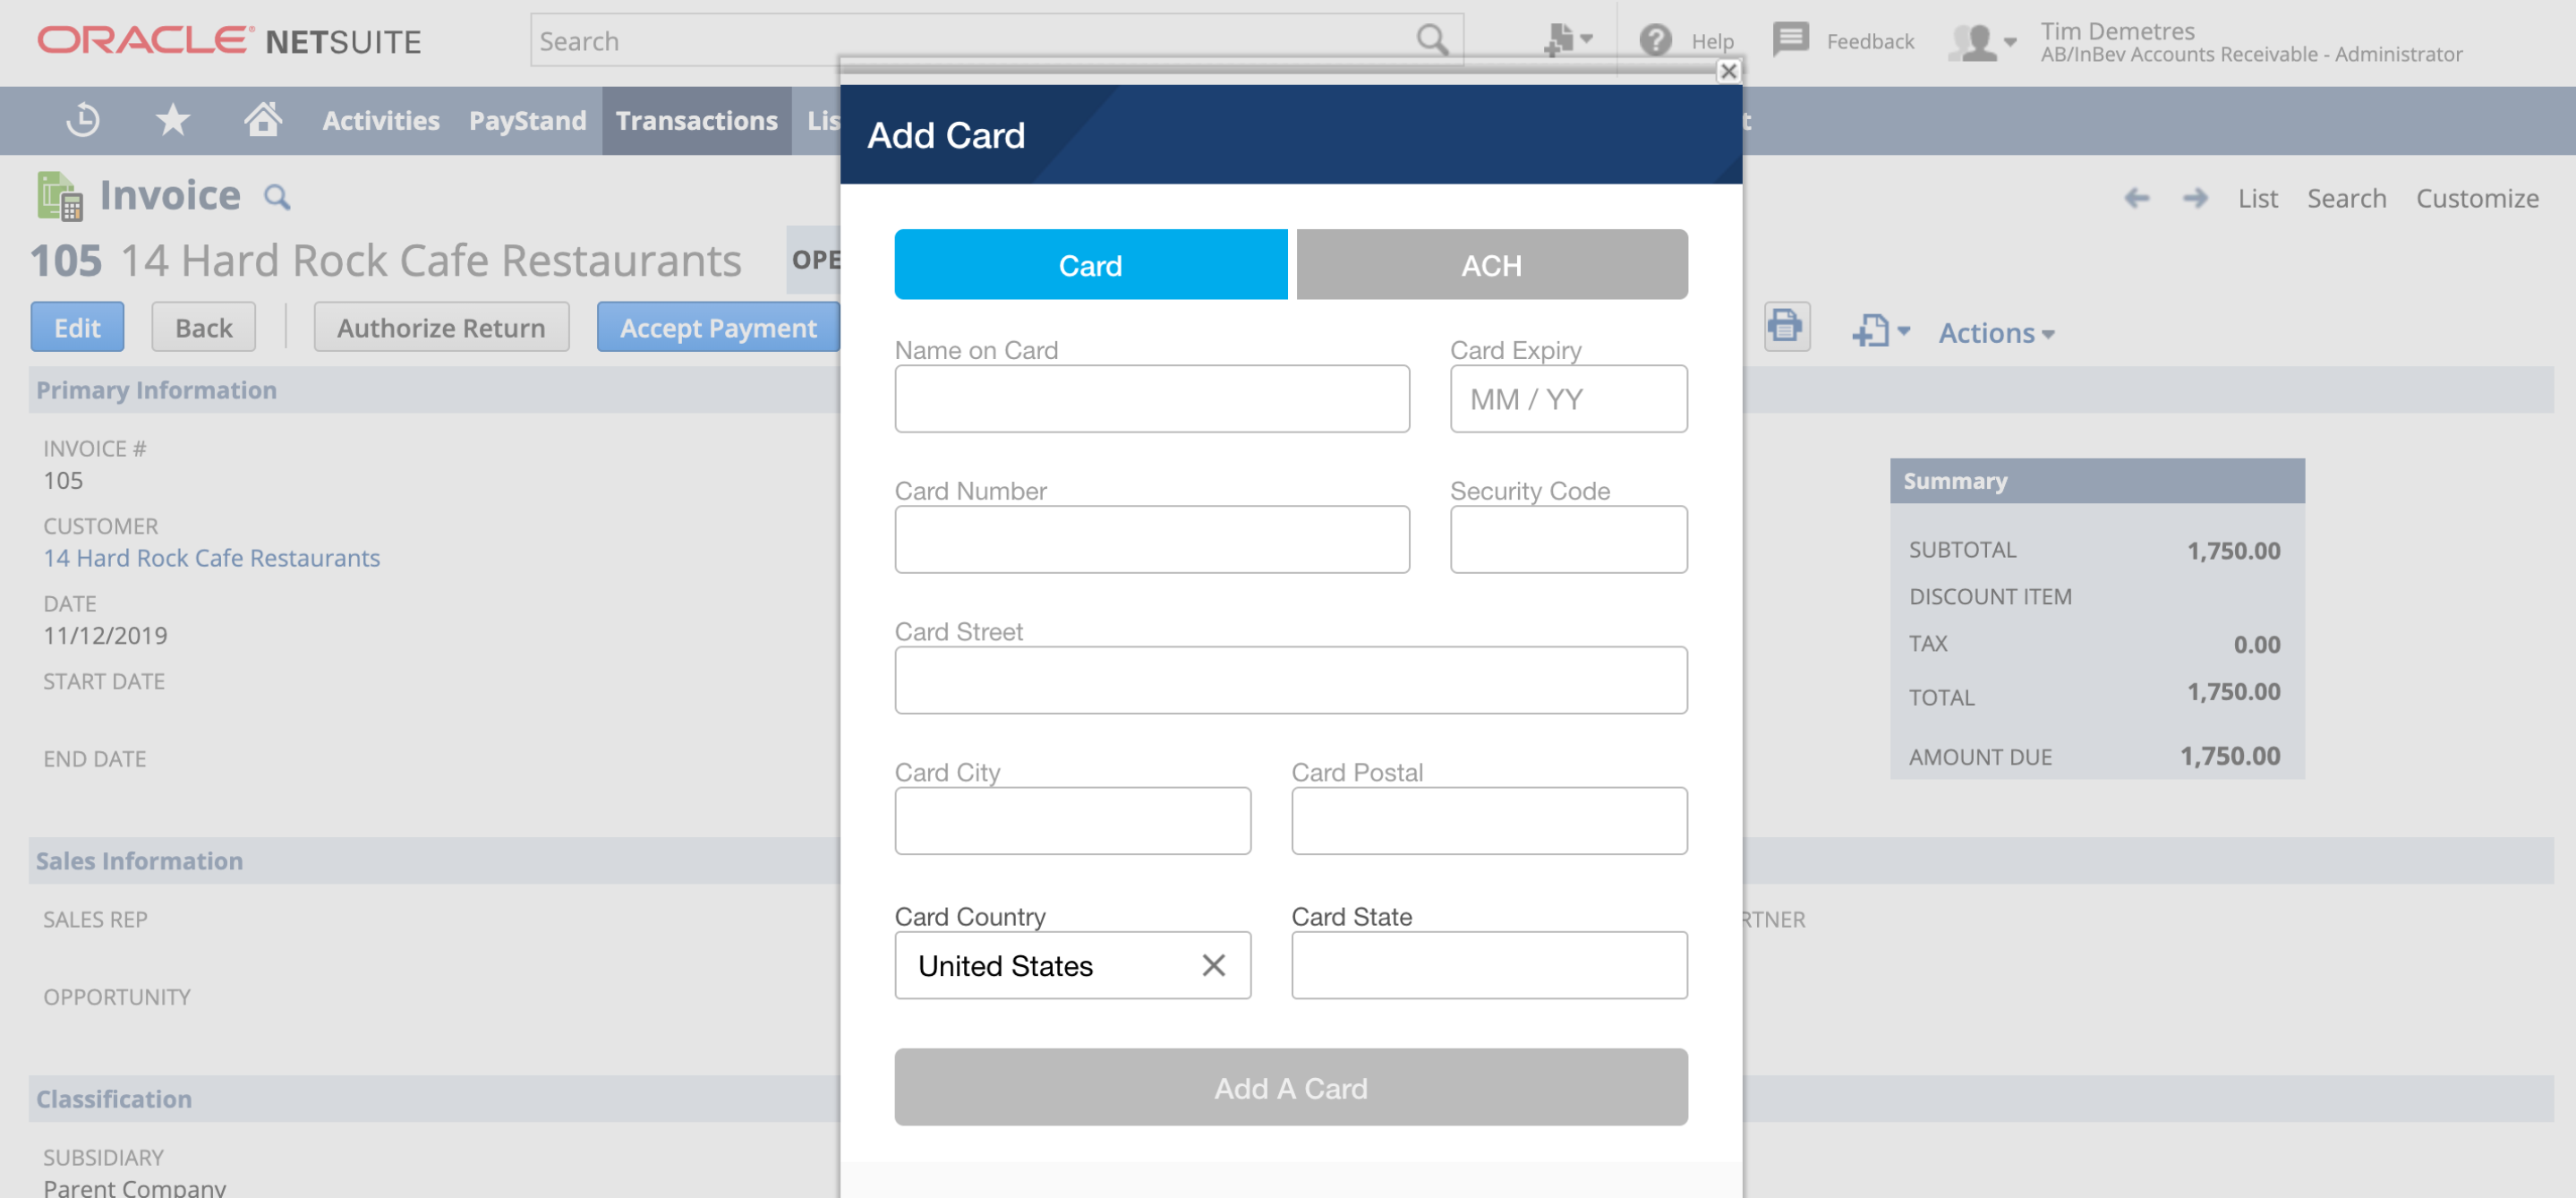 Payment Processing in NetSuite Paystand